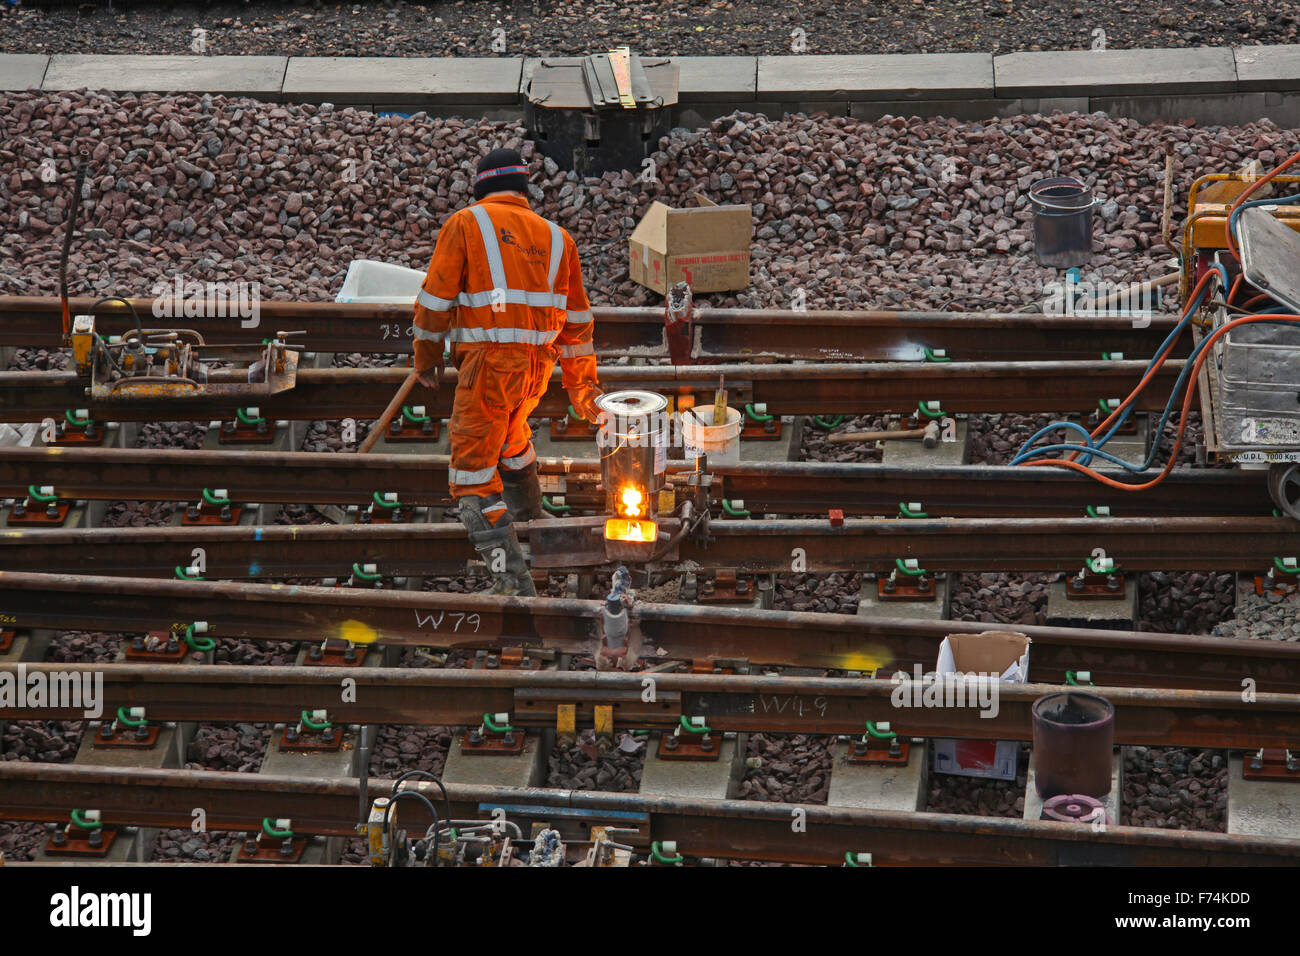 A track worker having just lit a Rail welder device that melts the two track together to for a continuous line in - Stock Image